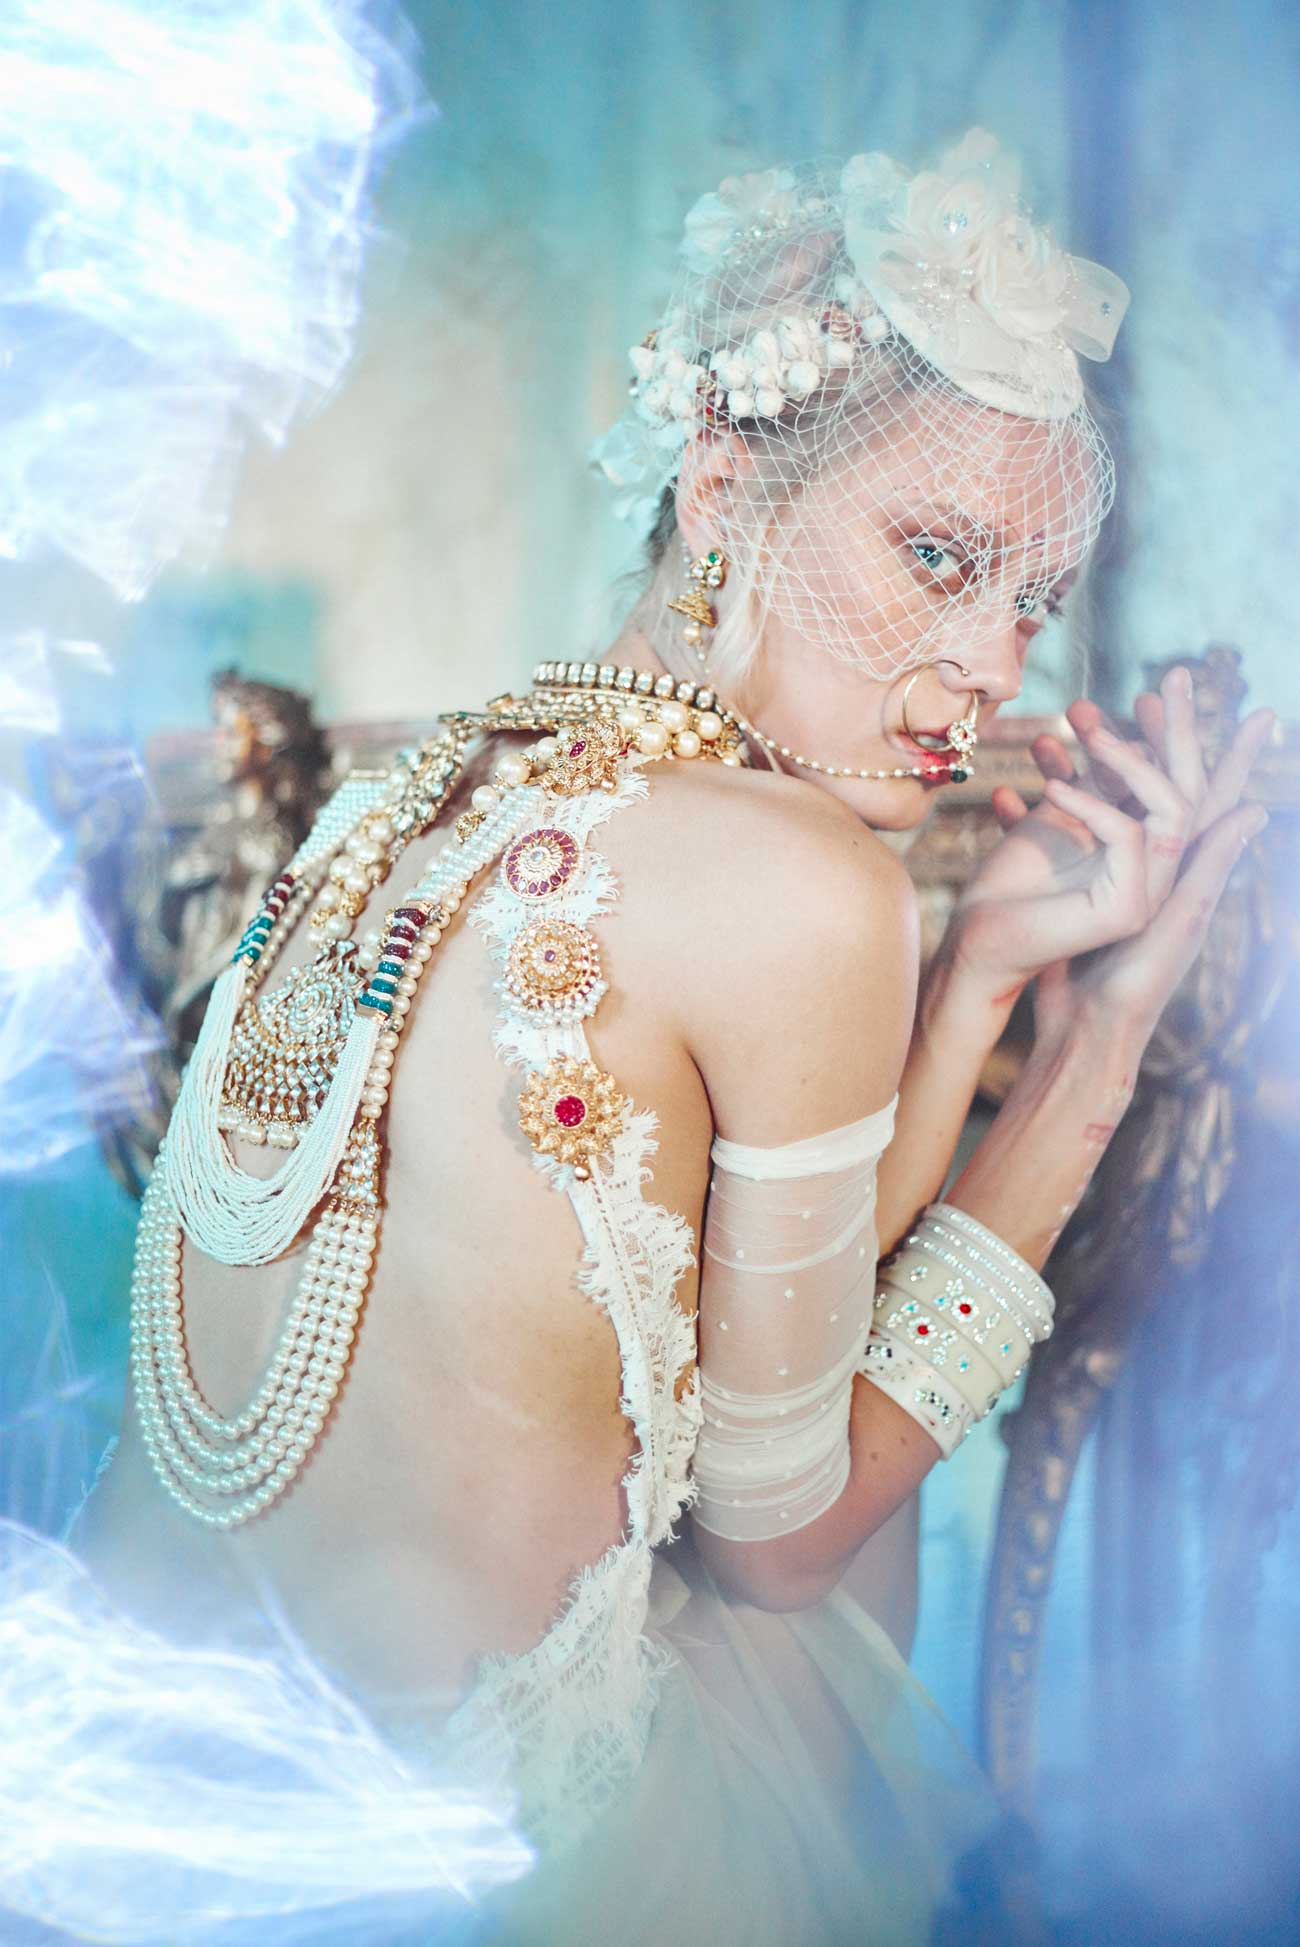 Princess Diaries - Princess Jewellery - Photographed by Shirin Bhakta